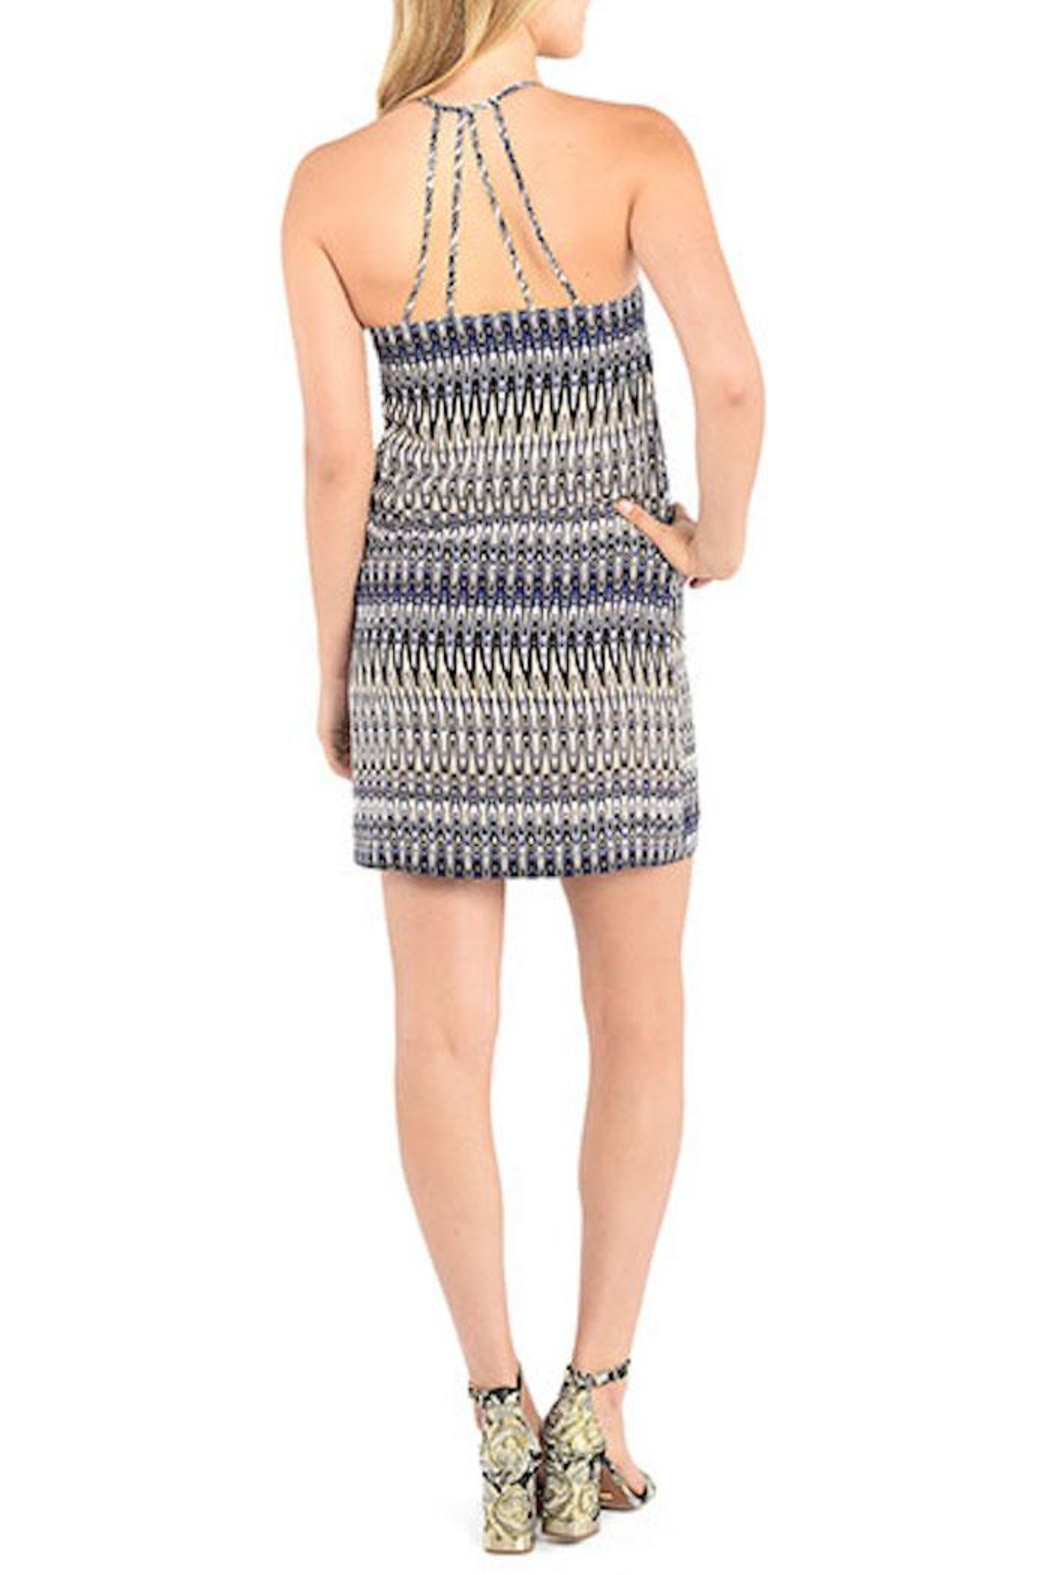 Kensie Strappy Patterned Shift Dress - Side Cropped Image